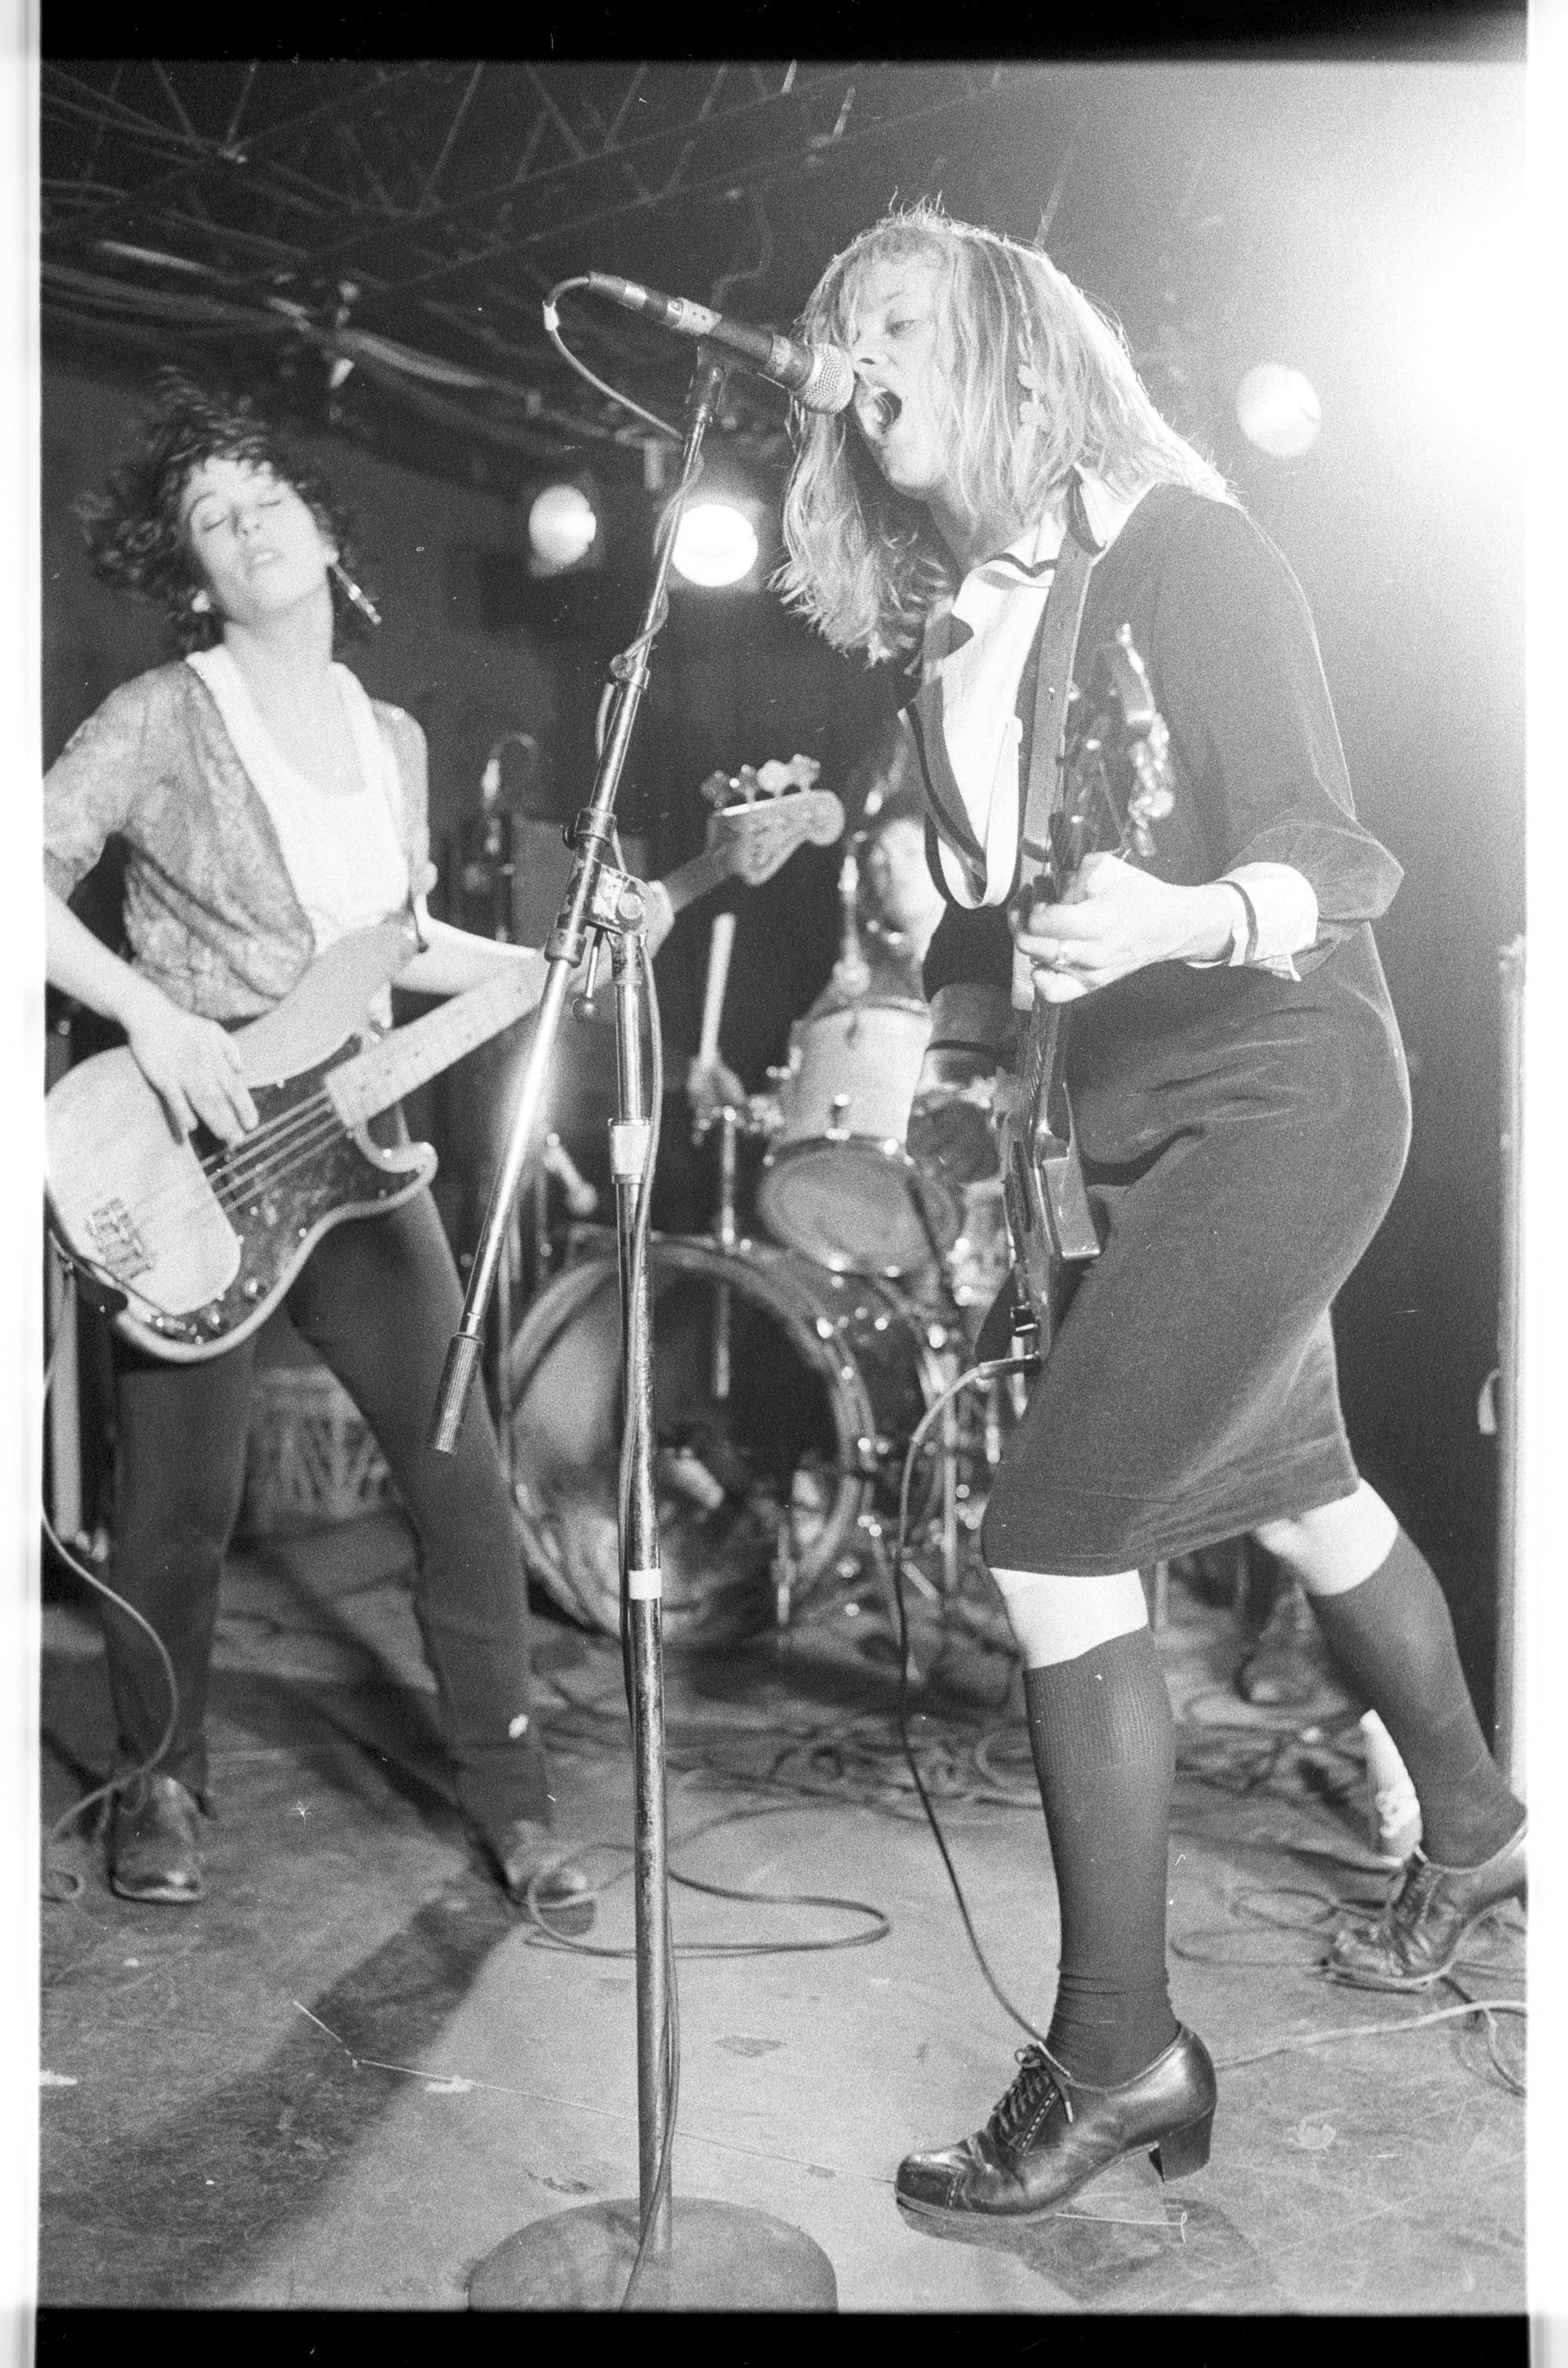 Babes in Toyland at the 7th Street Entry in March 1990